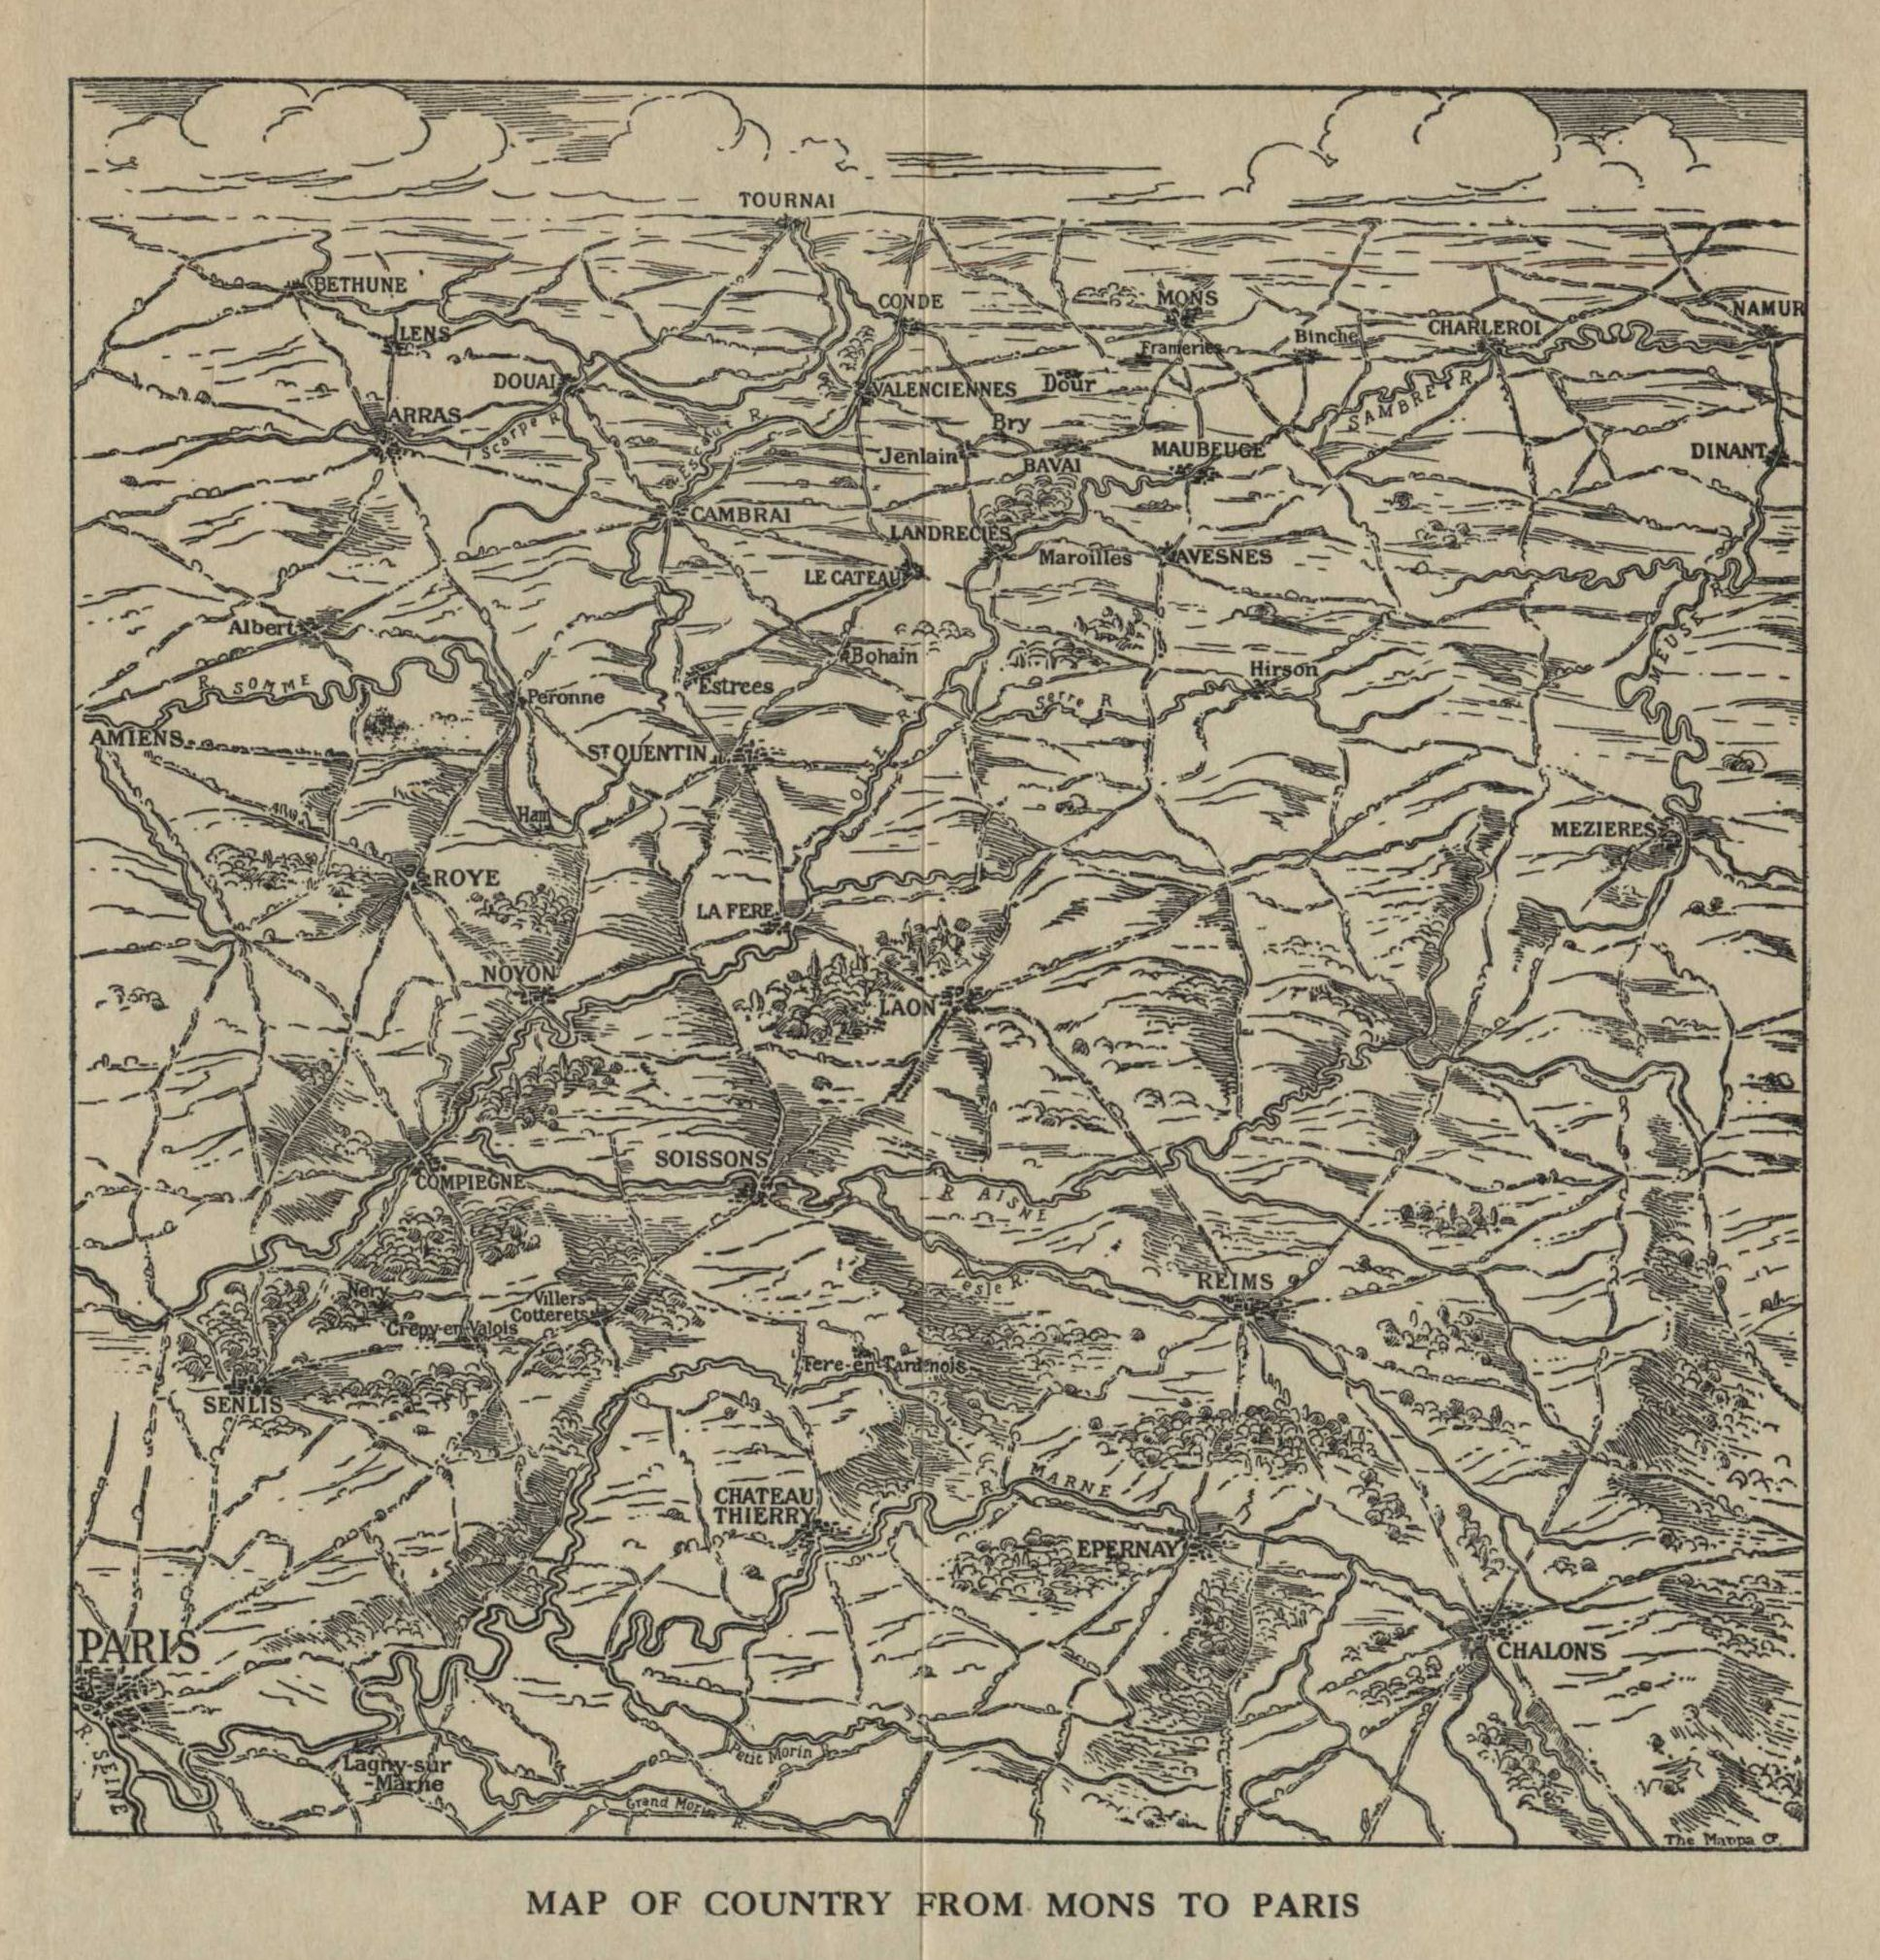 MAP OF COUNTRY FROM MONS TO PARIS